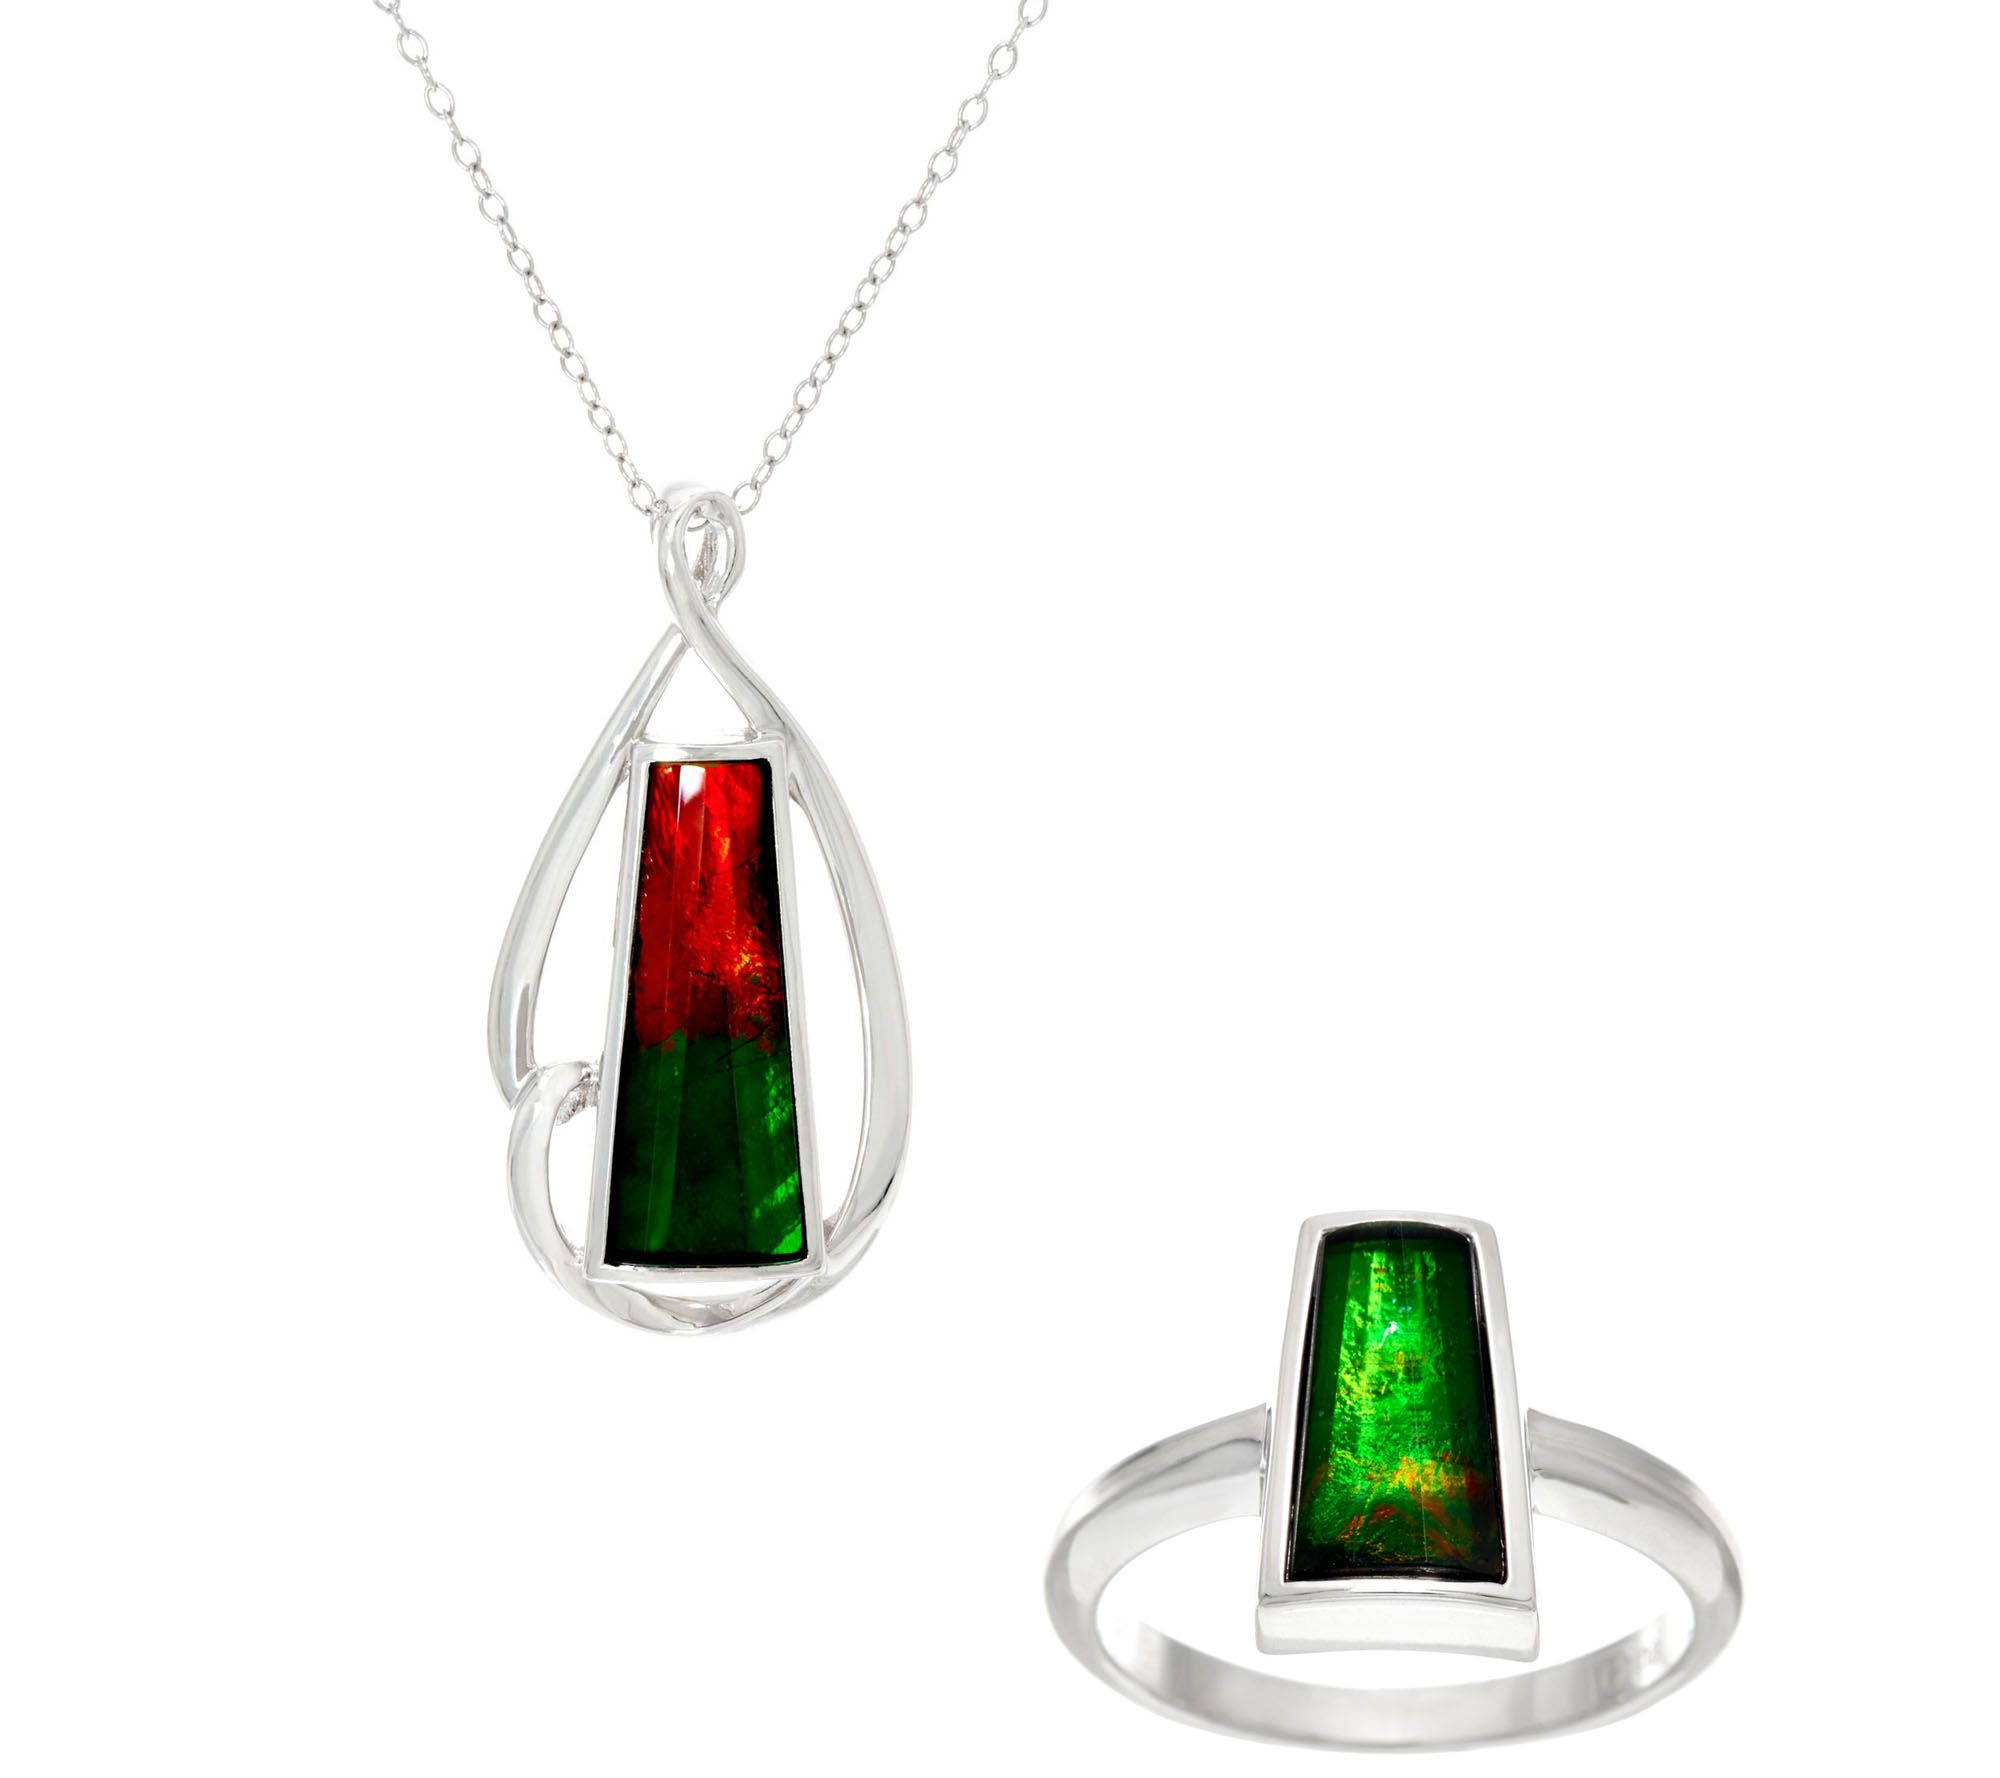 Ammolite Triplet Sterling Silver Ring or Pendant onChain